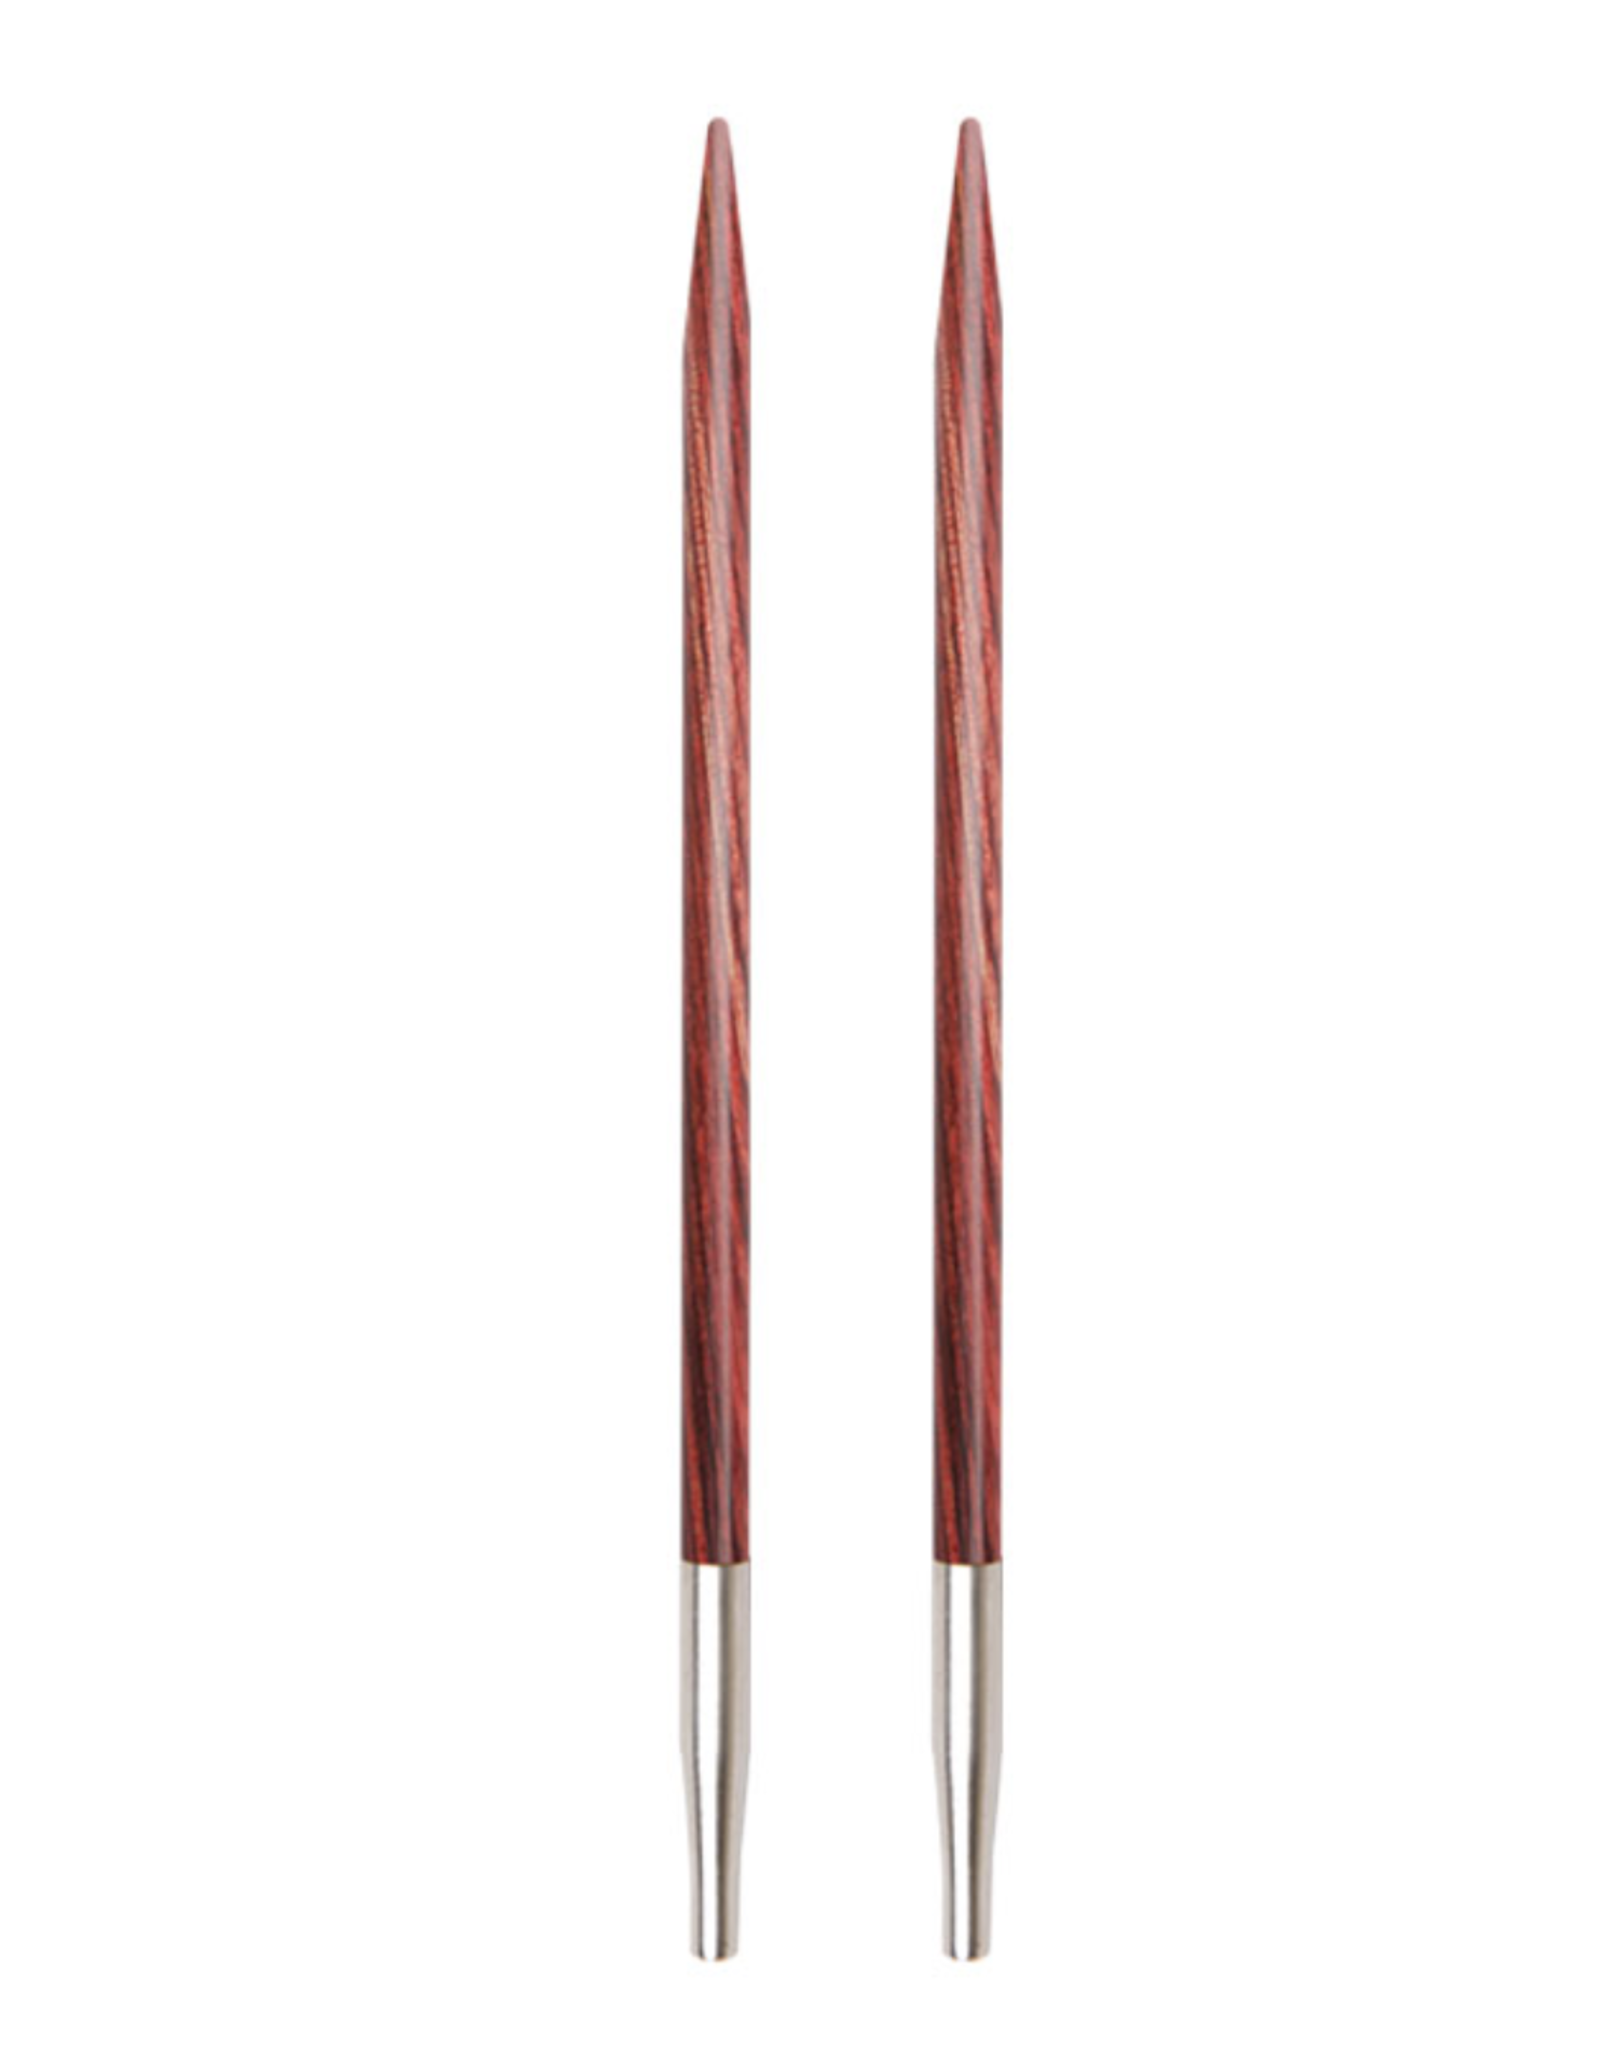 "Dreamz size US 8 interchangeable needle tips for 24"" cords and up."